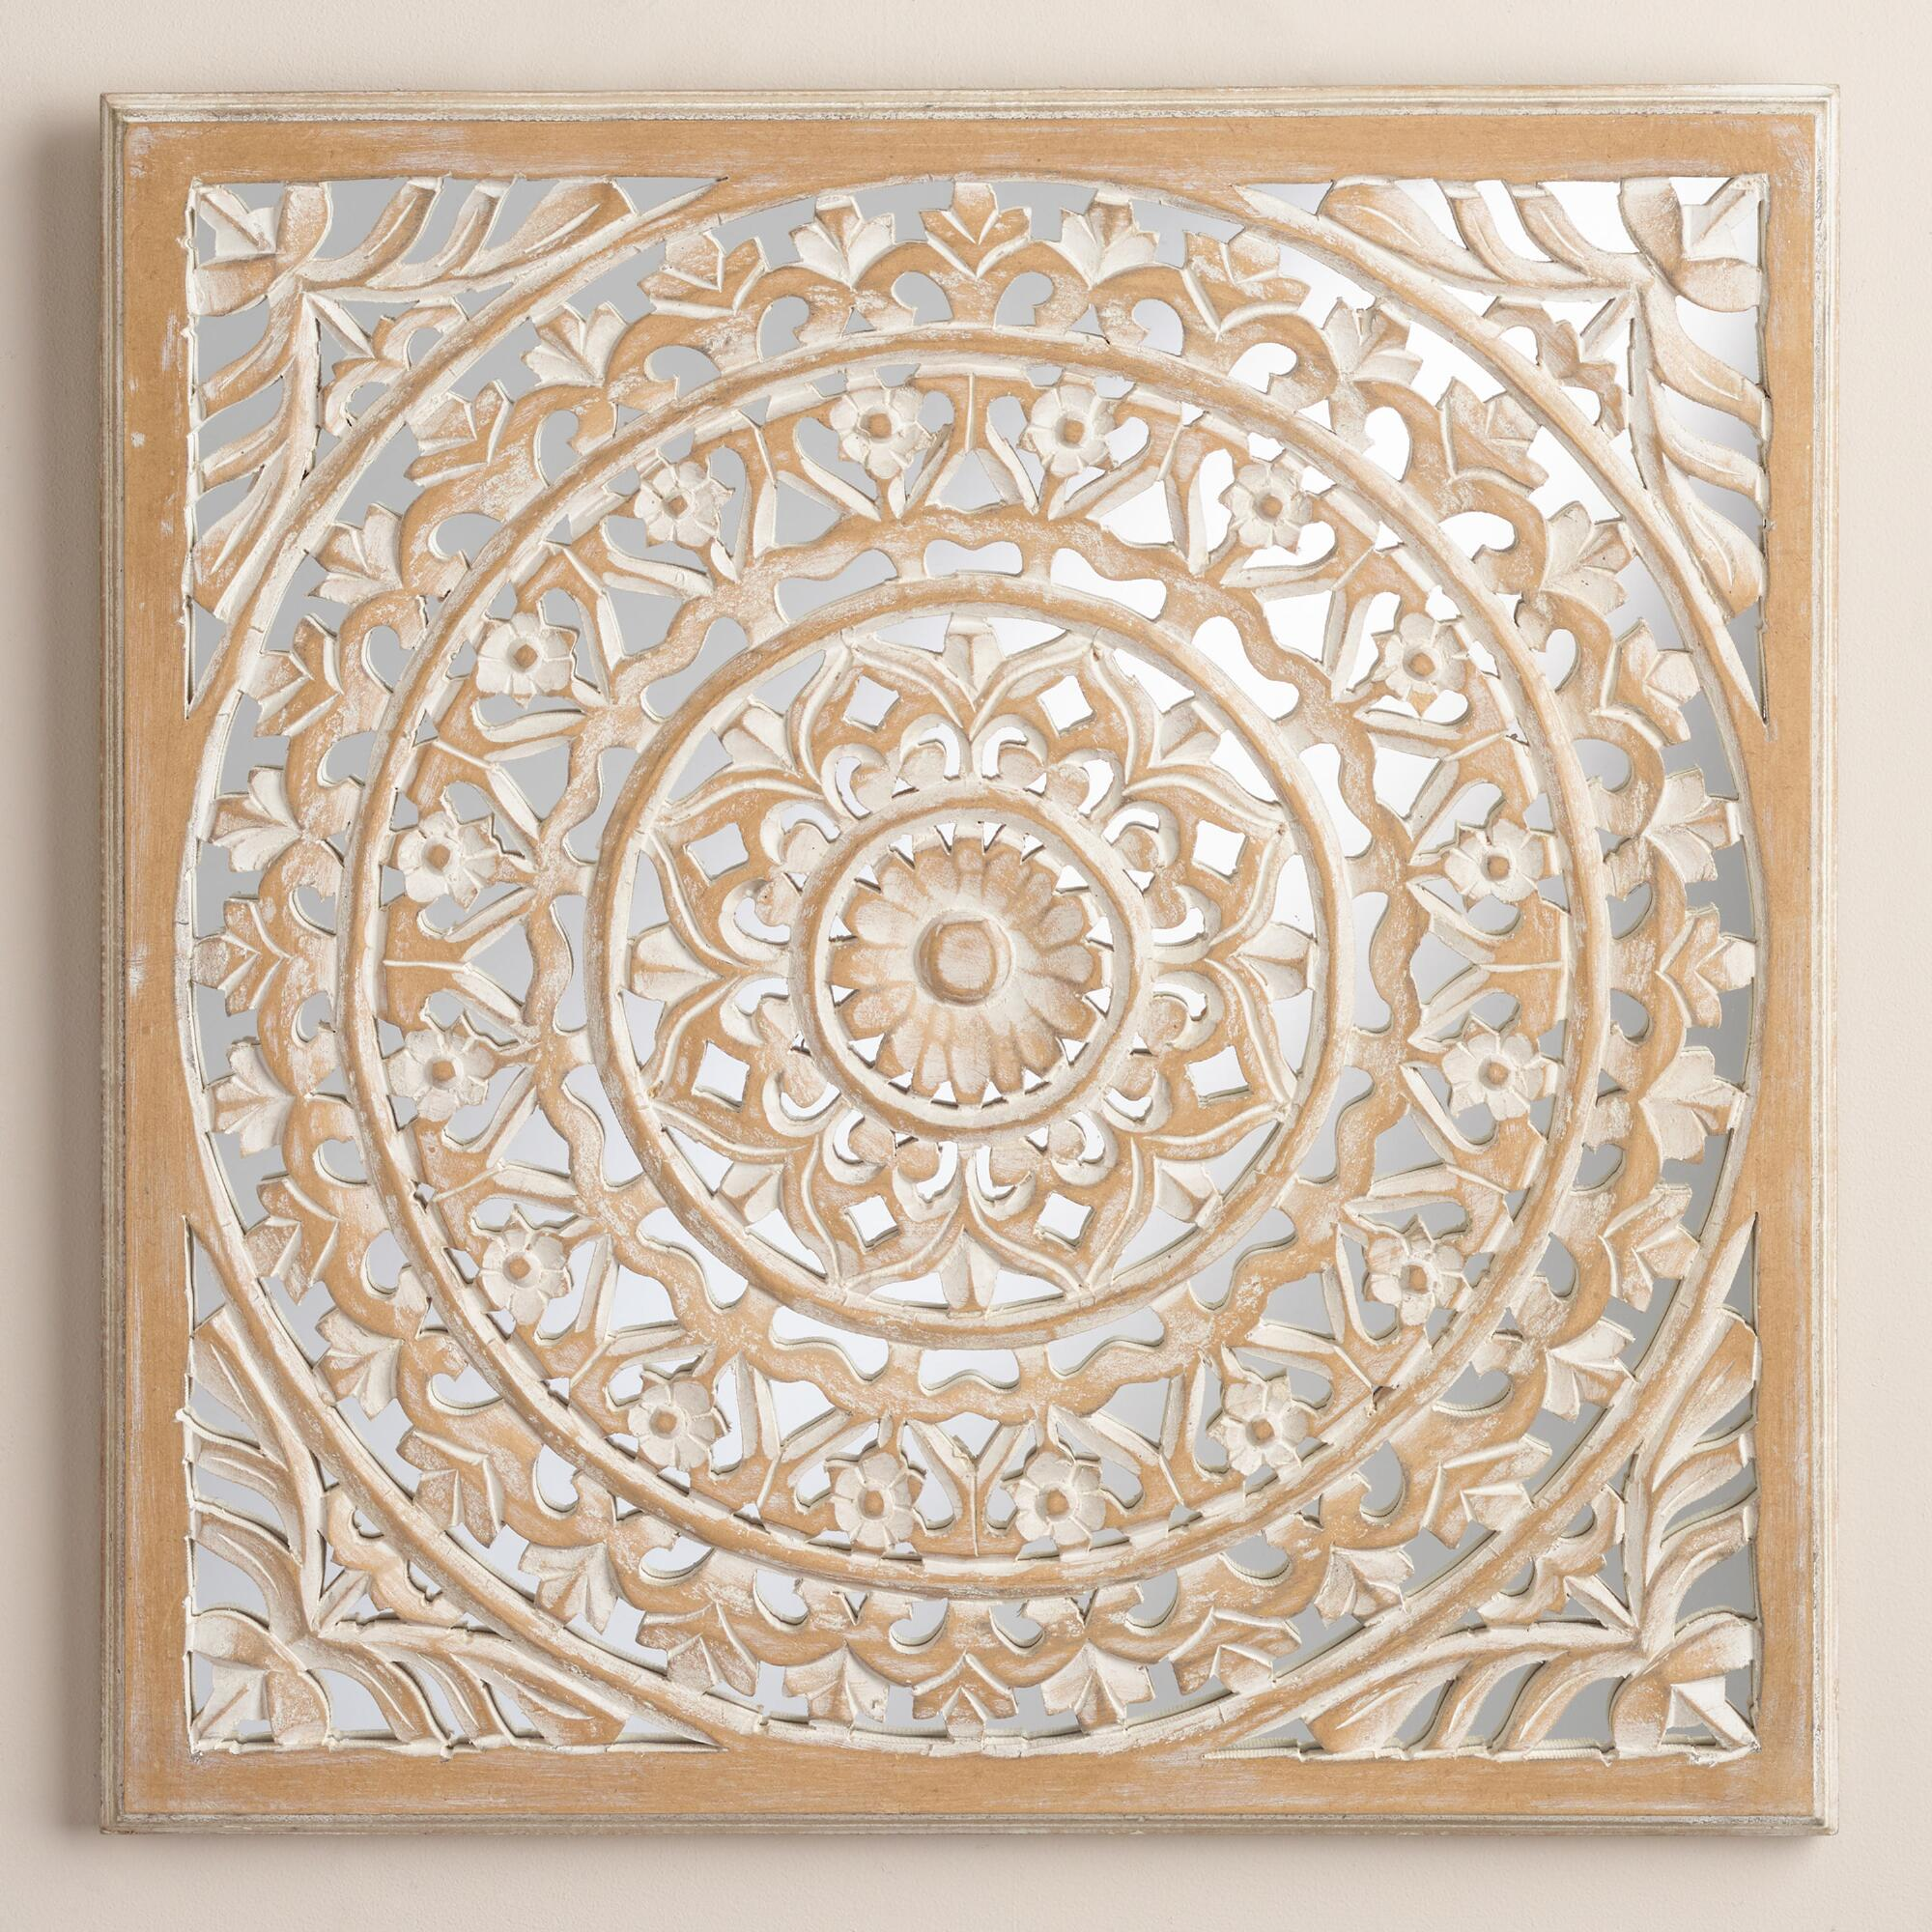 Carved mirrored leela wall plaque world market for Decorative wall decor